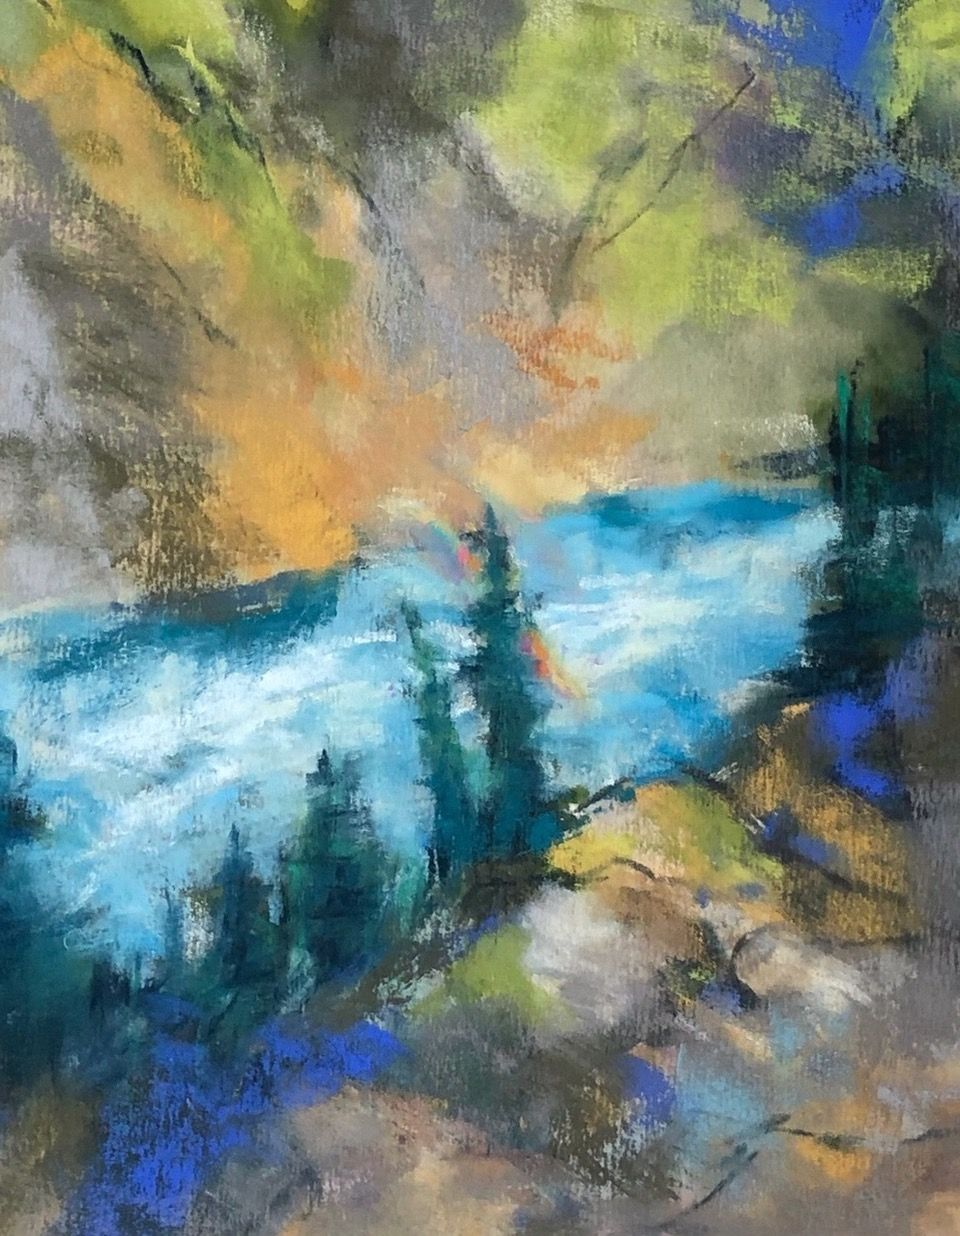 Artist: Mary O'Connor, Pastel Painting